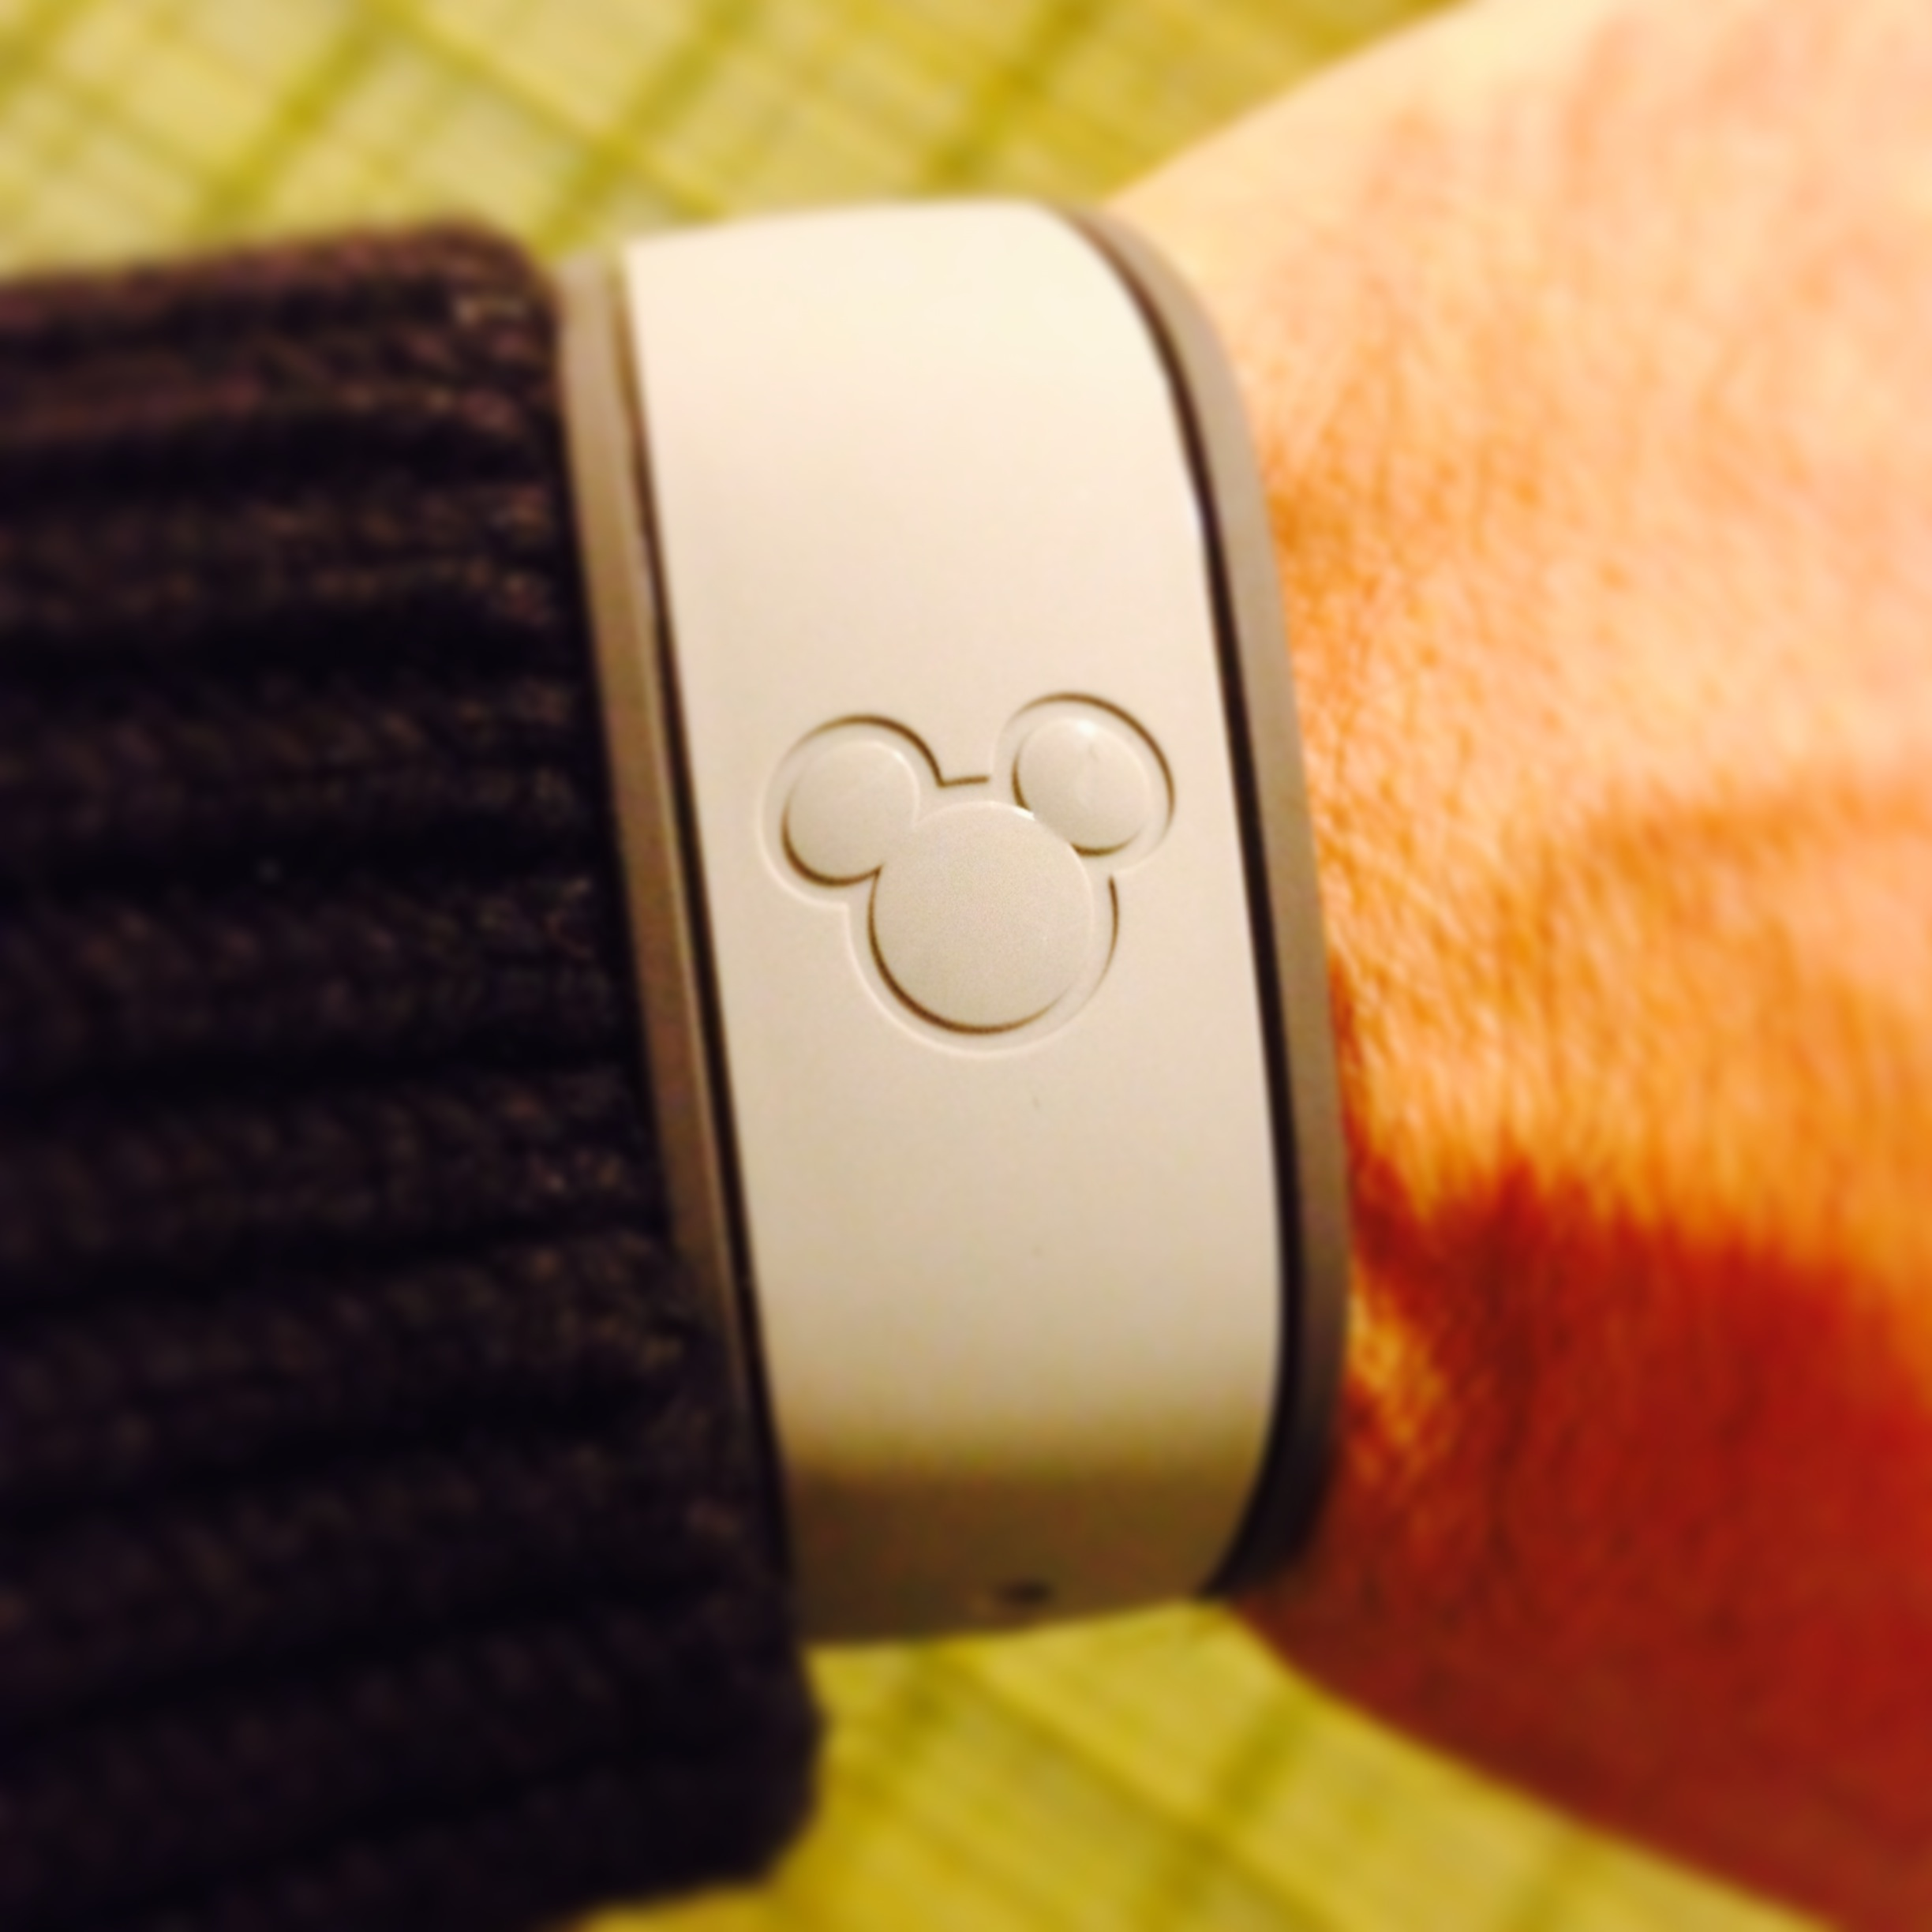 disney theme park wearable UX